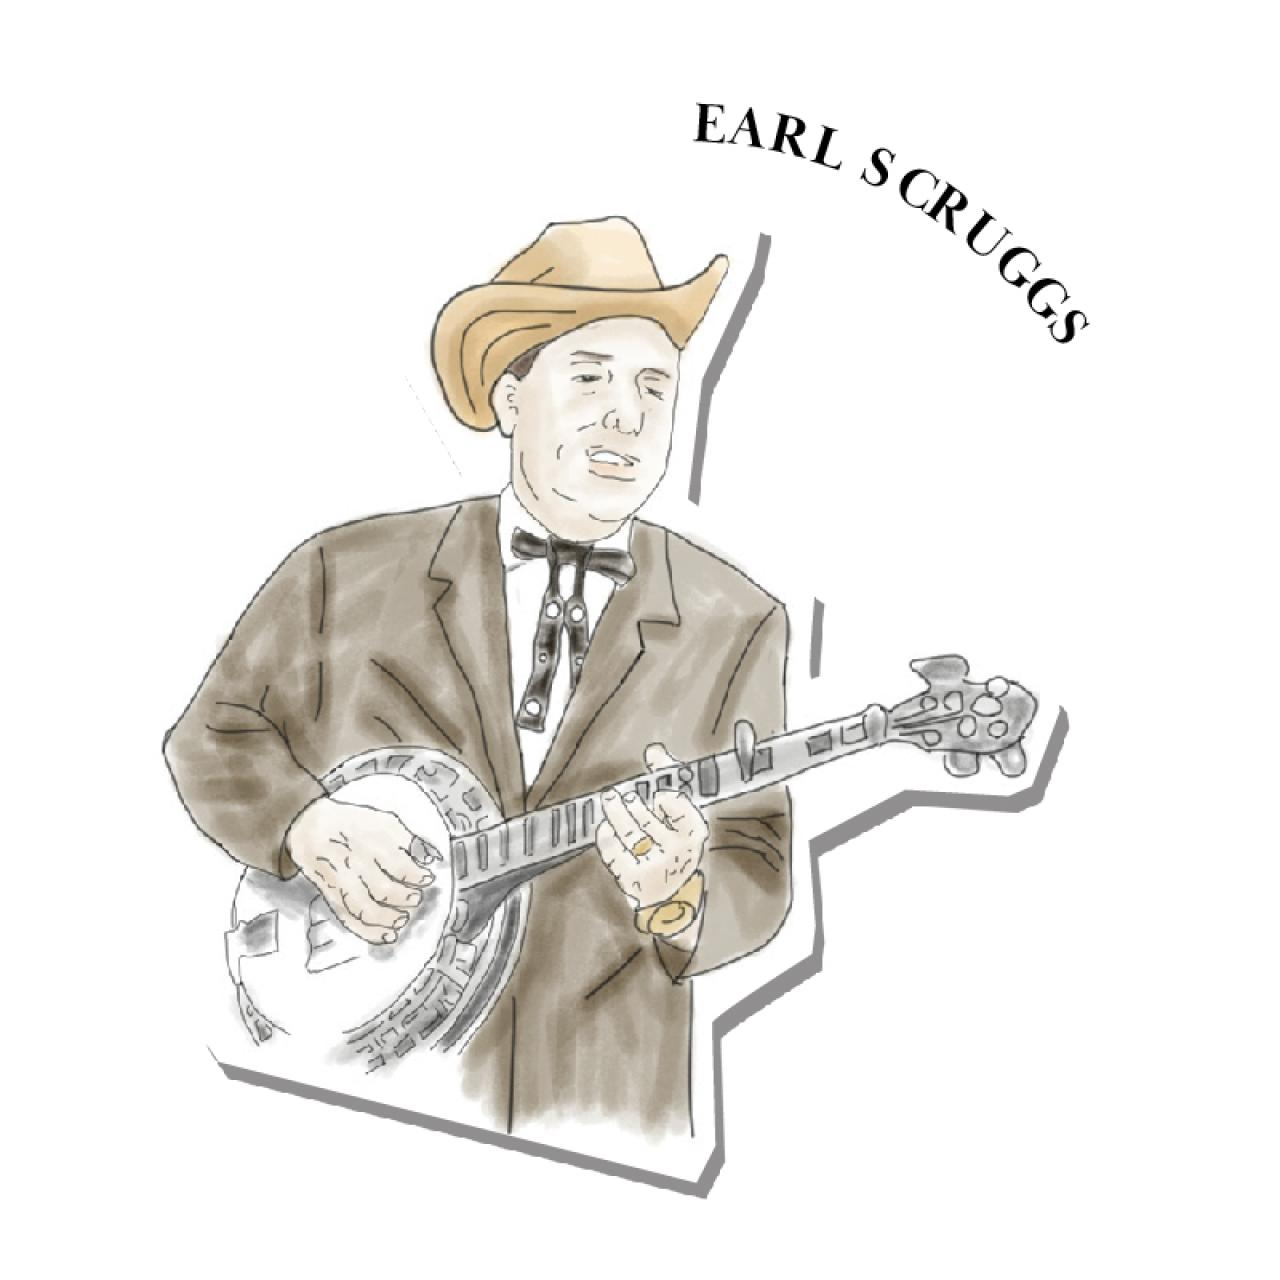 An illustration of Earl Scruggs